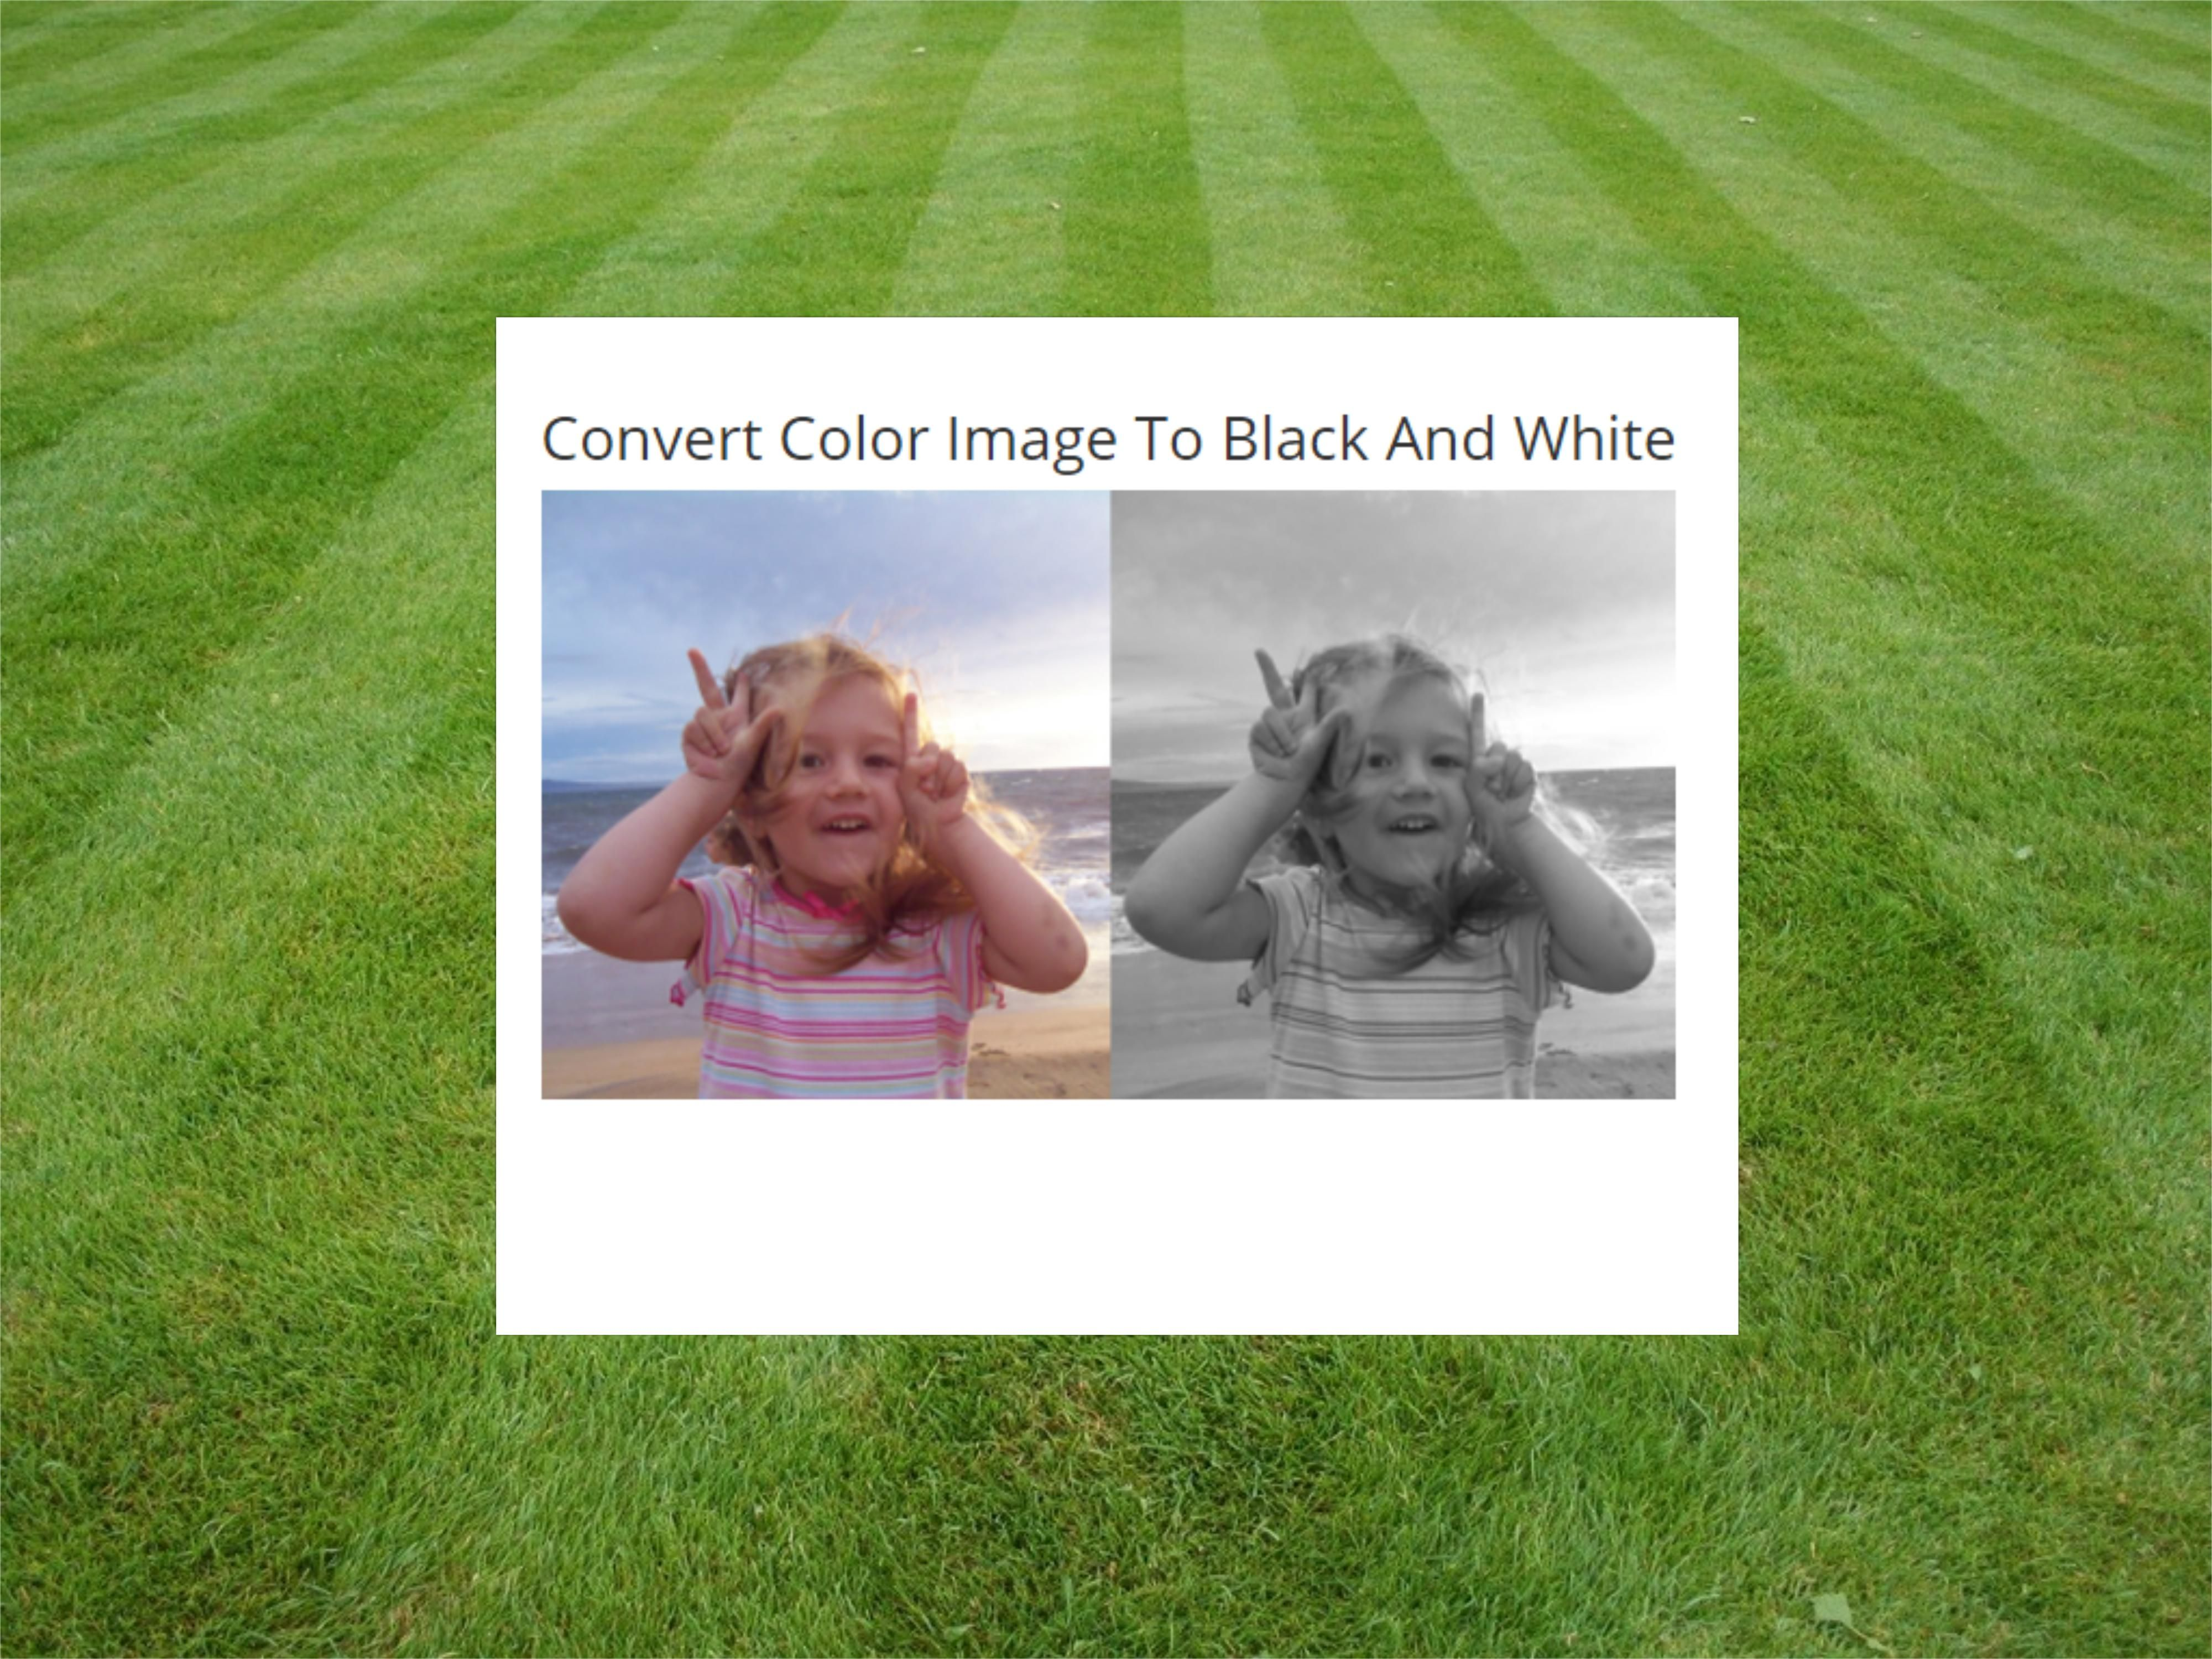 Want to Convert Color Image To Black And White Hassle free